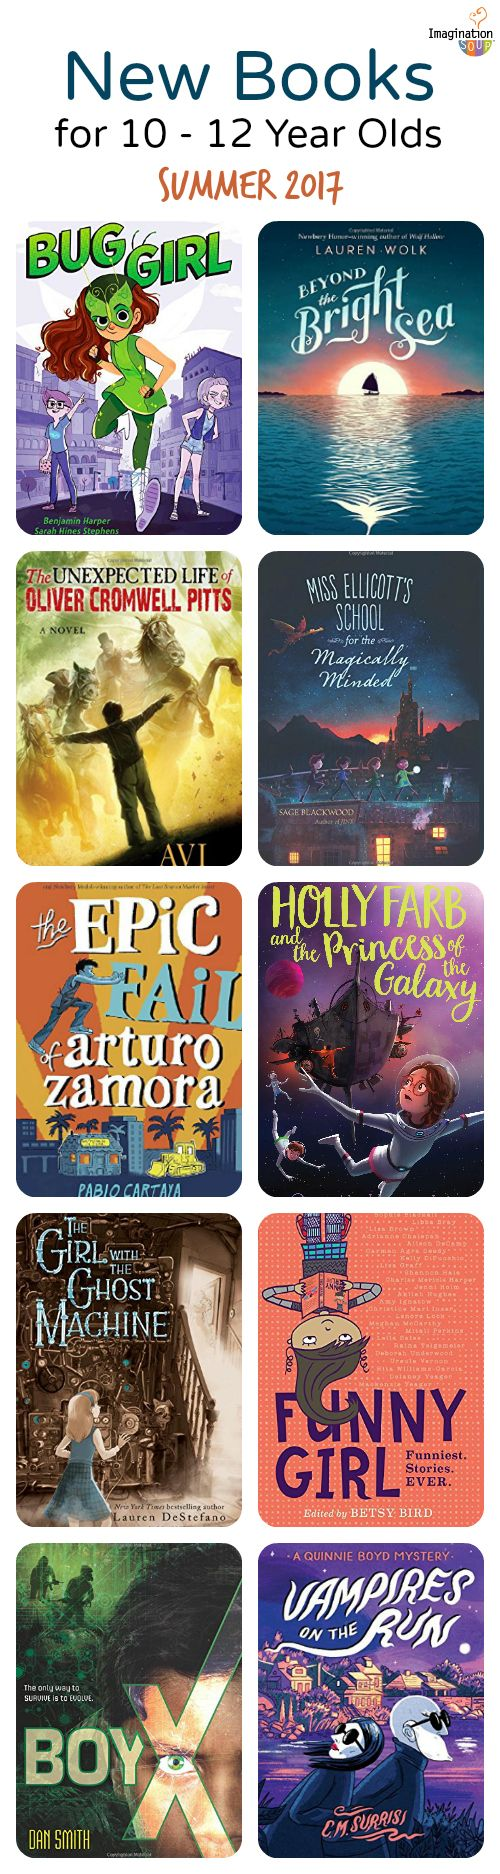 New Chapter Books For Summer Reading 2017 Ages 10 12